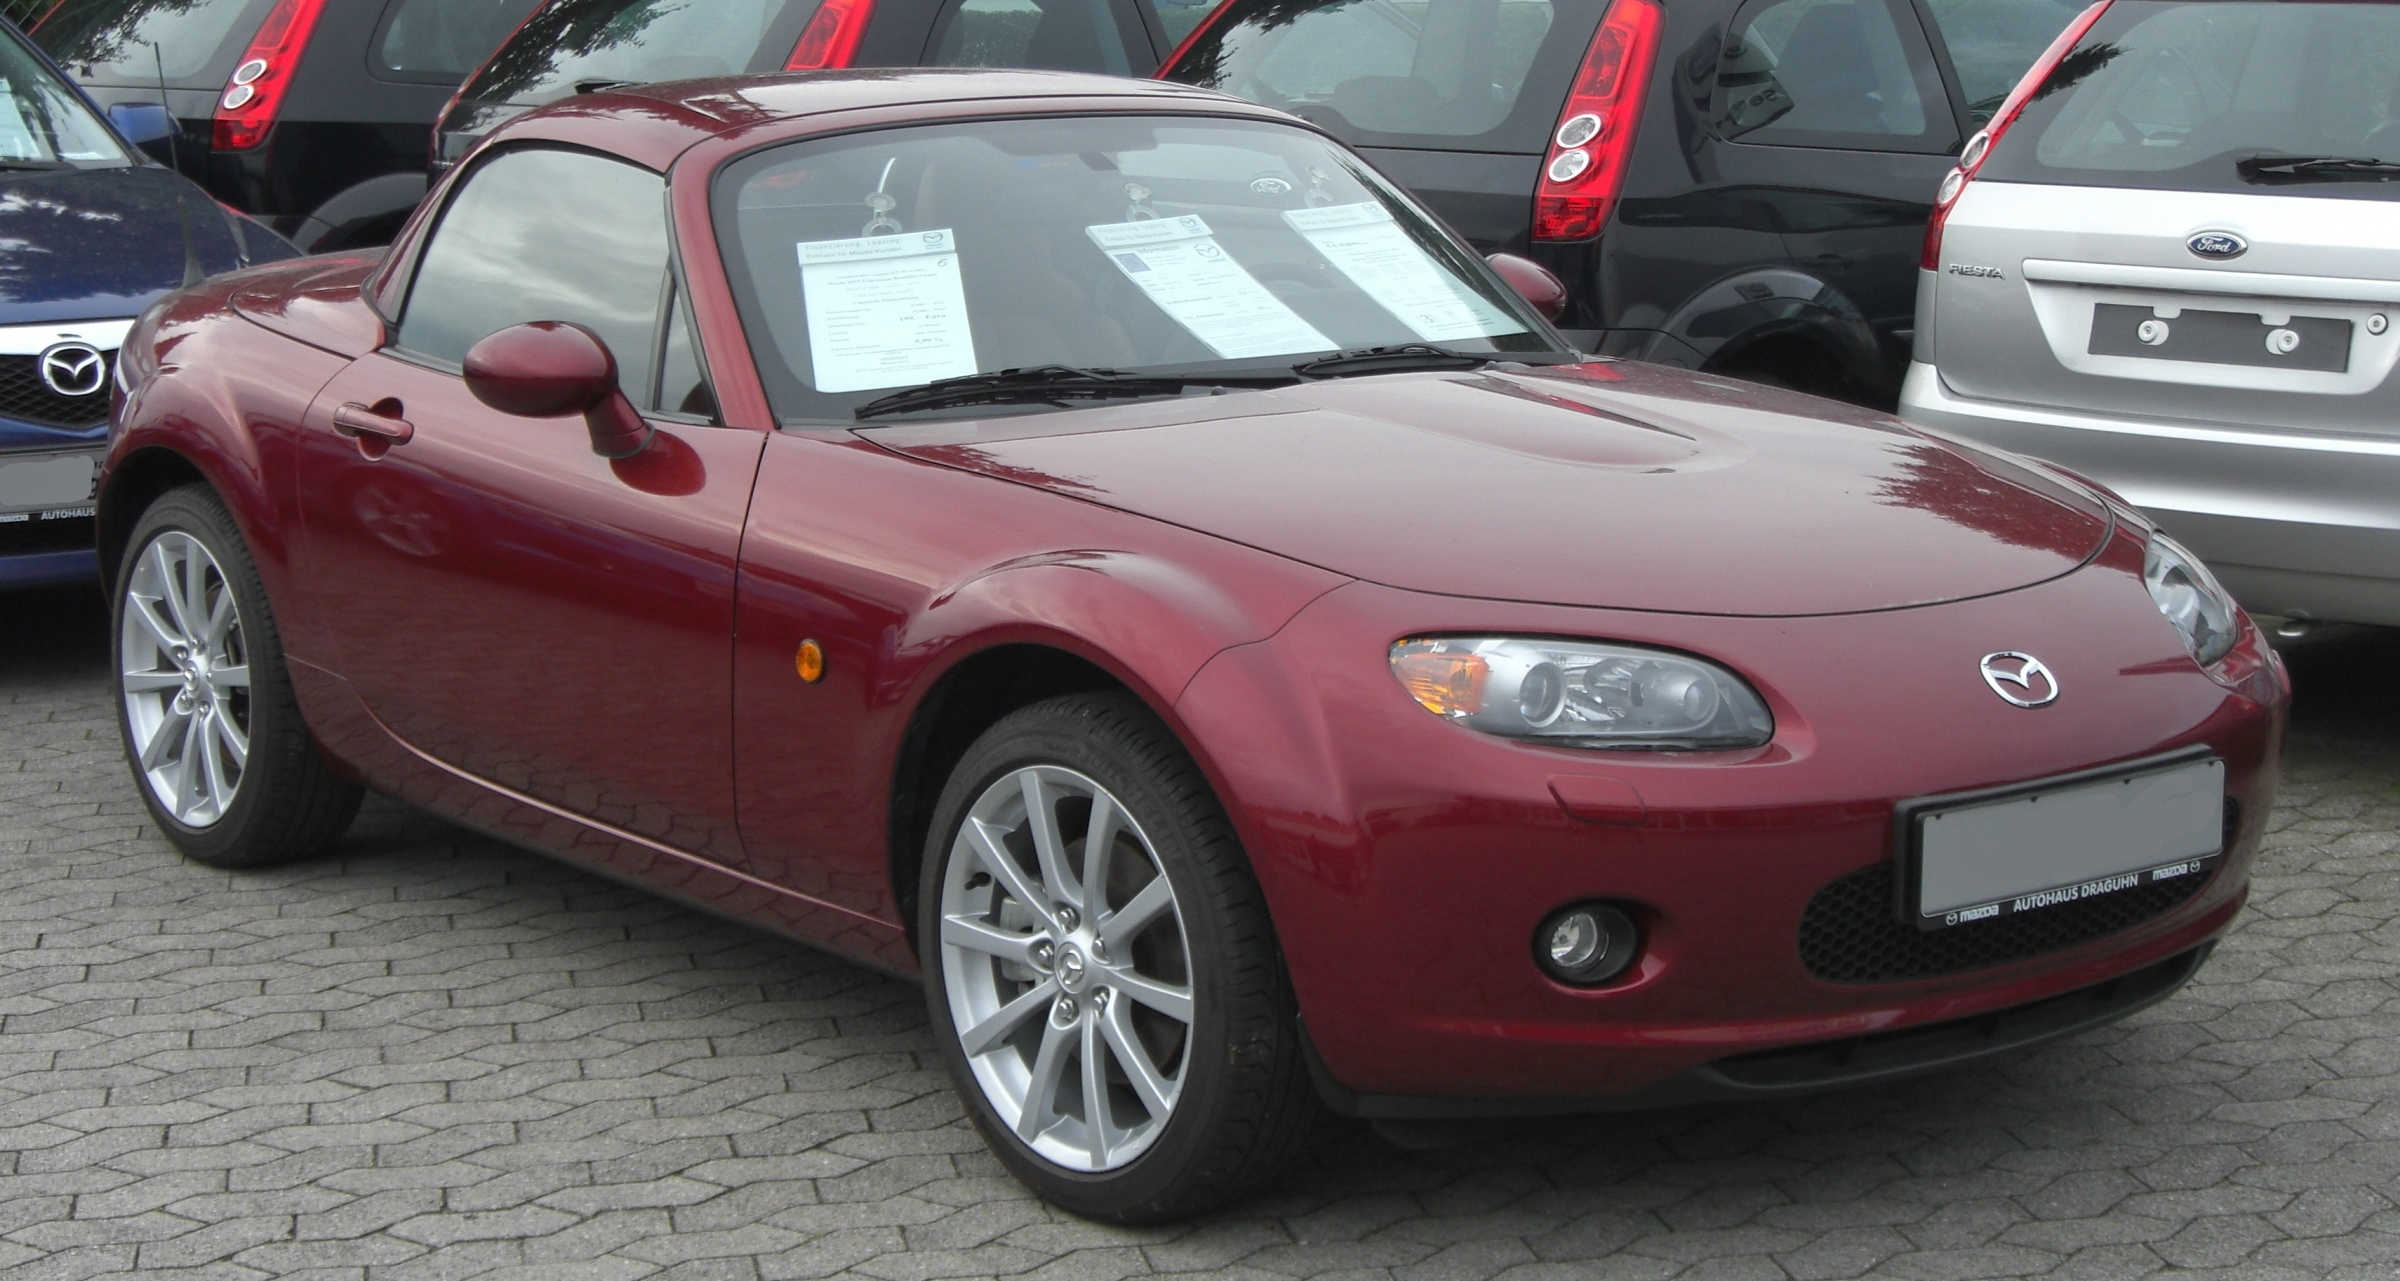 file mazda mx 5 nc front jpg wikimedia commons. Black Bedroom Furniture Sets. Home Design Ideas